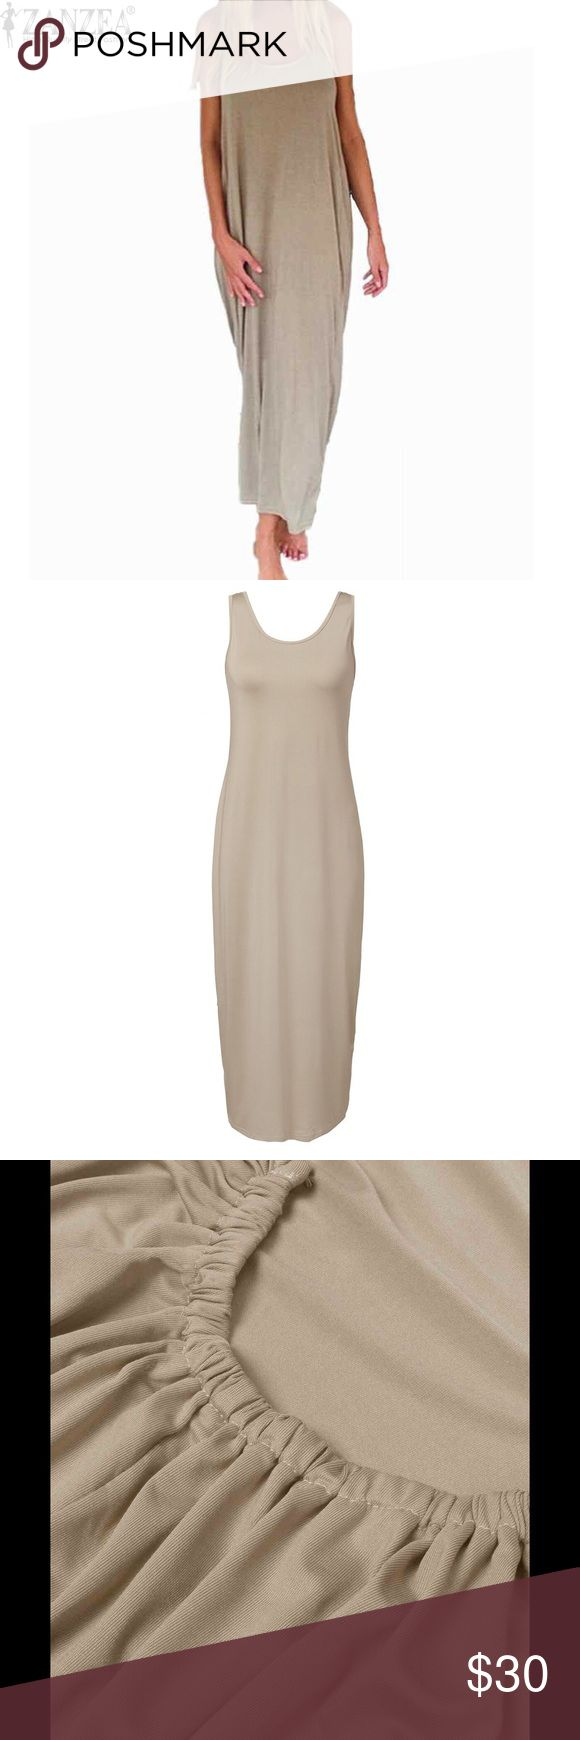 Beige Summer dress You'll love this dress. So comfy and light. Dresses Maxi